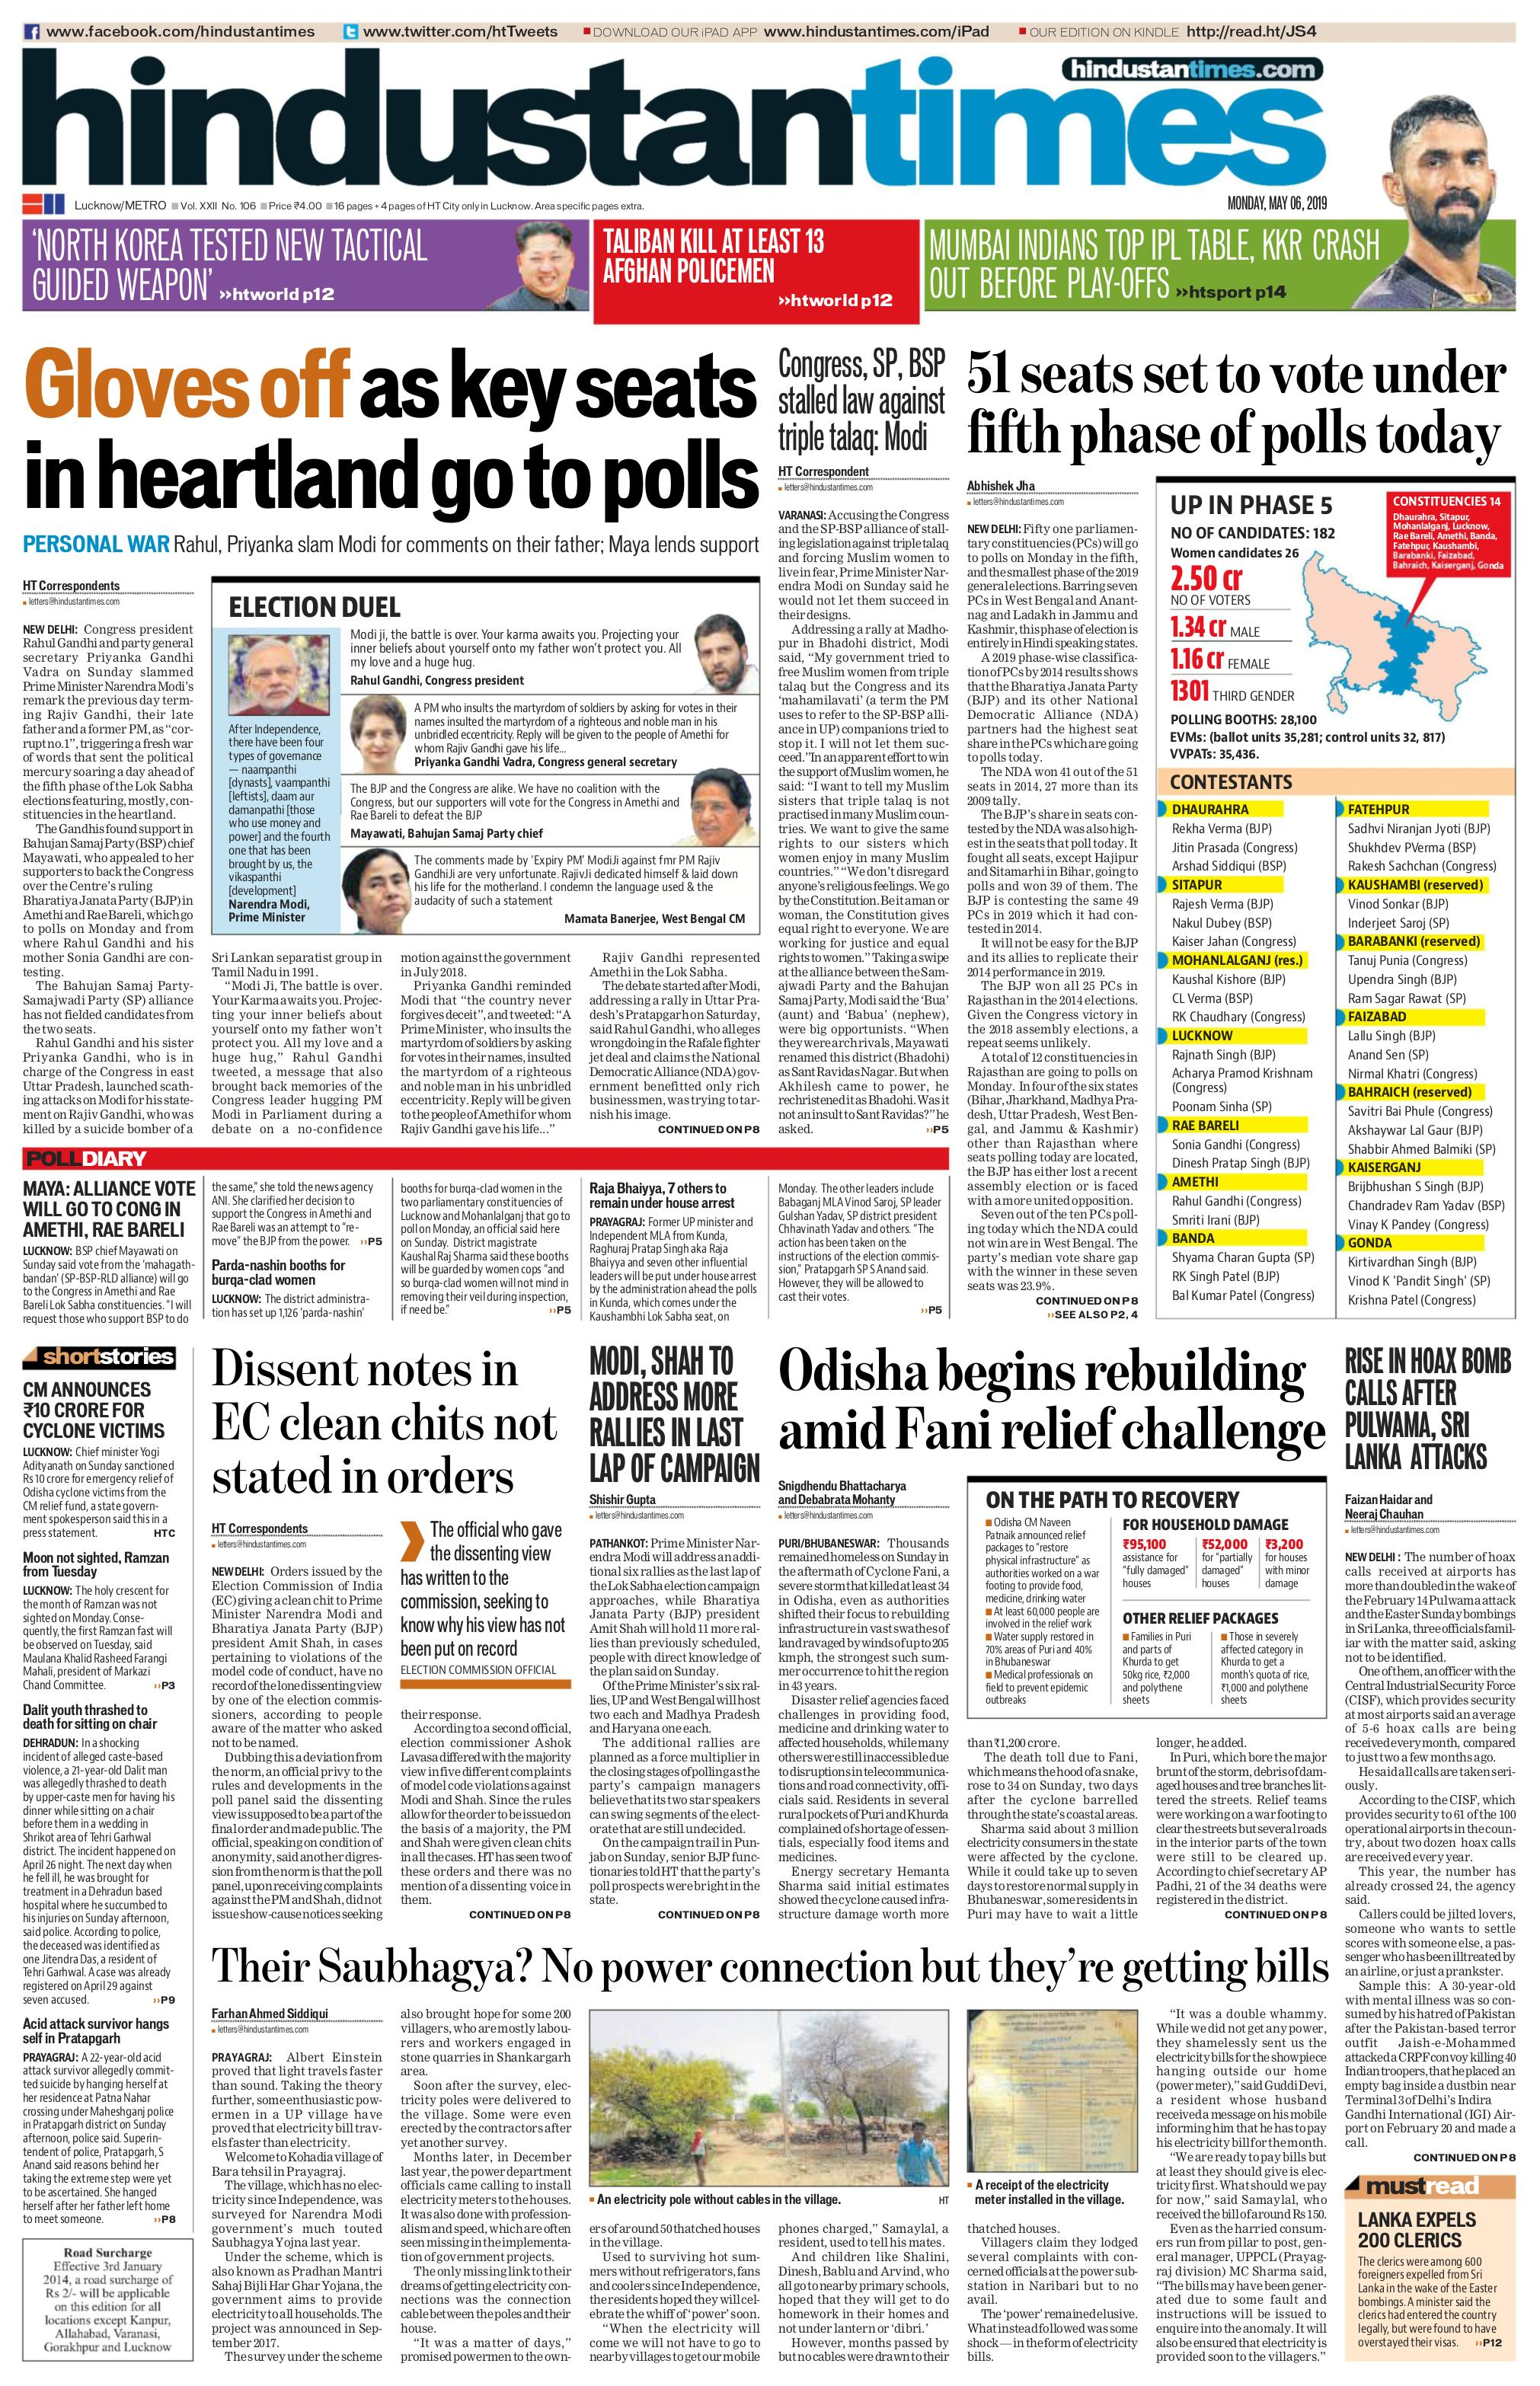 Hindustan Times Lucknow - May 6, 2019 Digital Magazine from